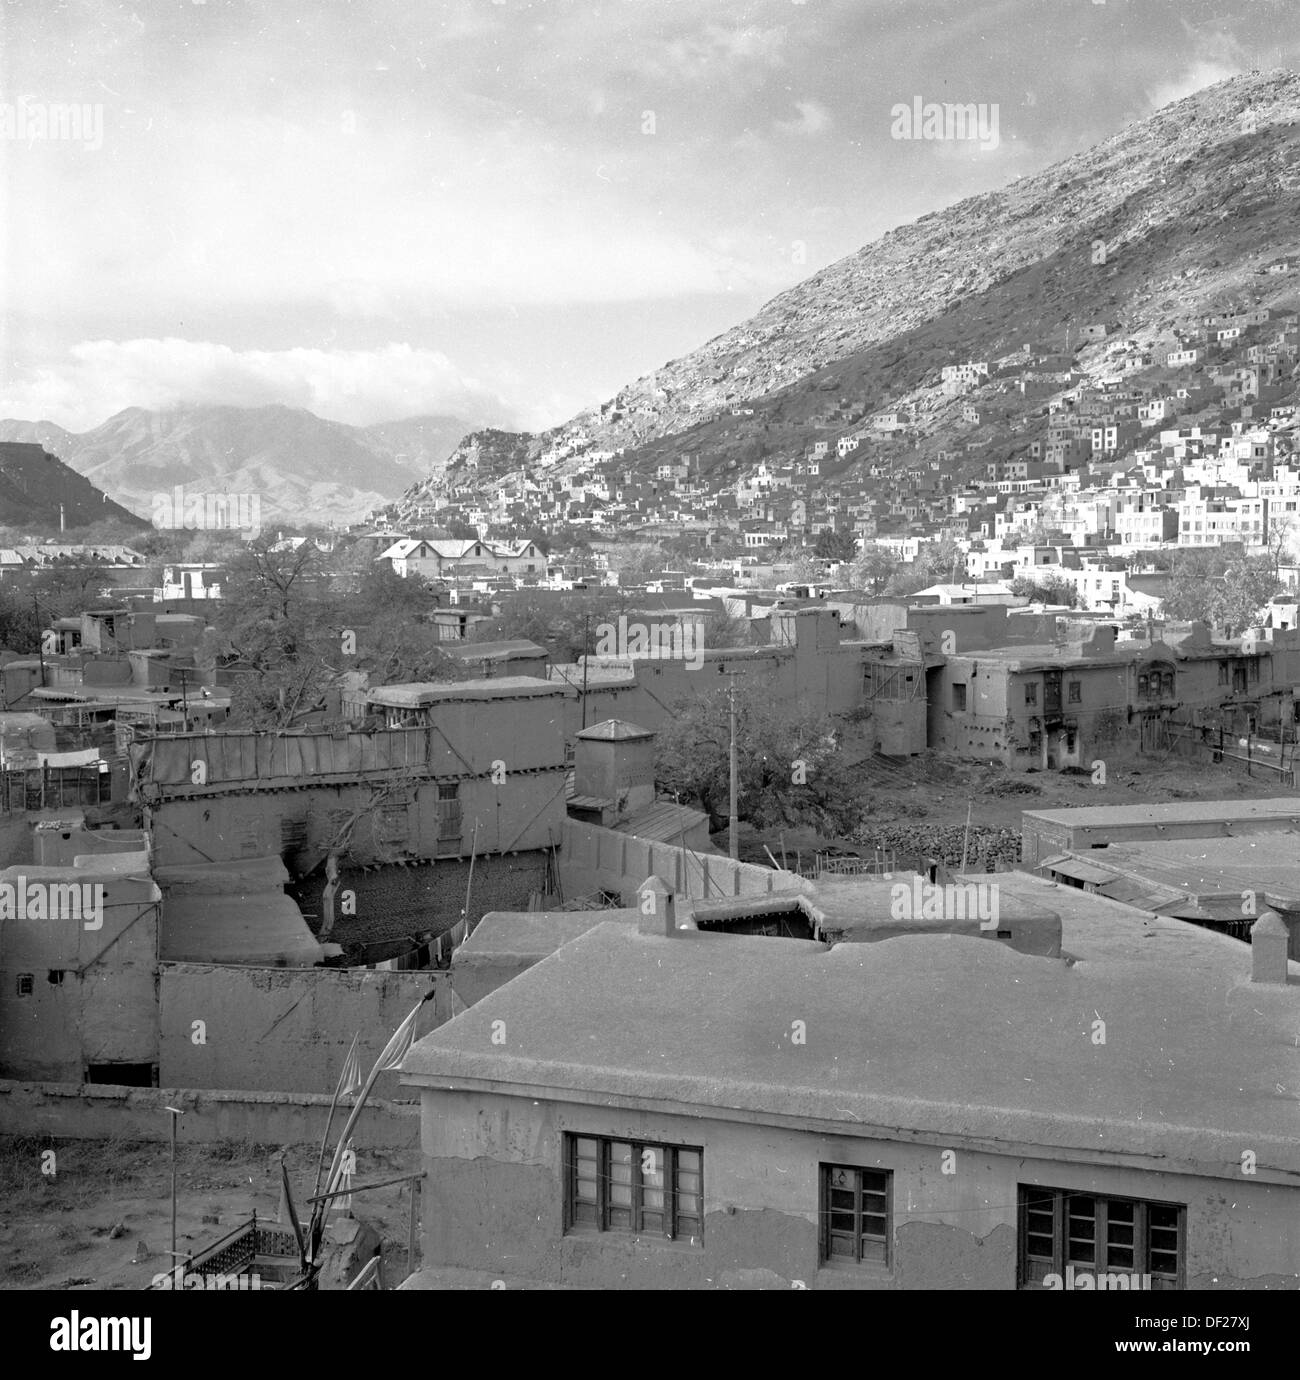 Historical picture from 1950s by J Allan Cash of buildings and mountains near the capital city of Kabul, Afghanistan - Stock Image